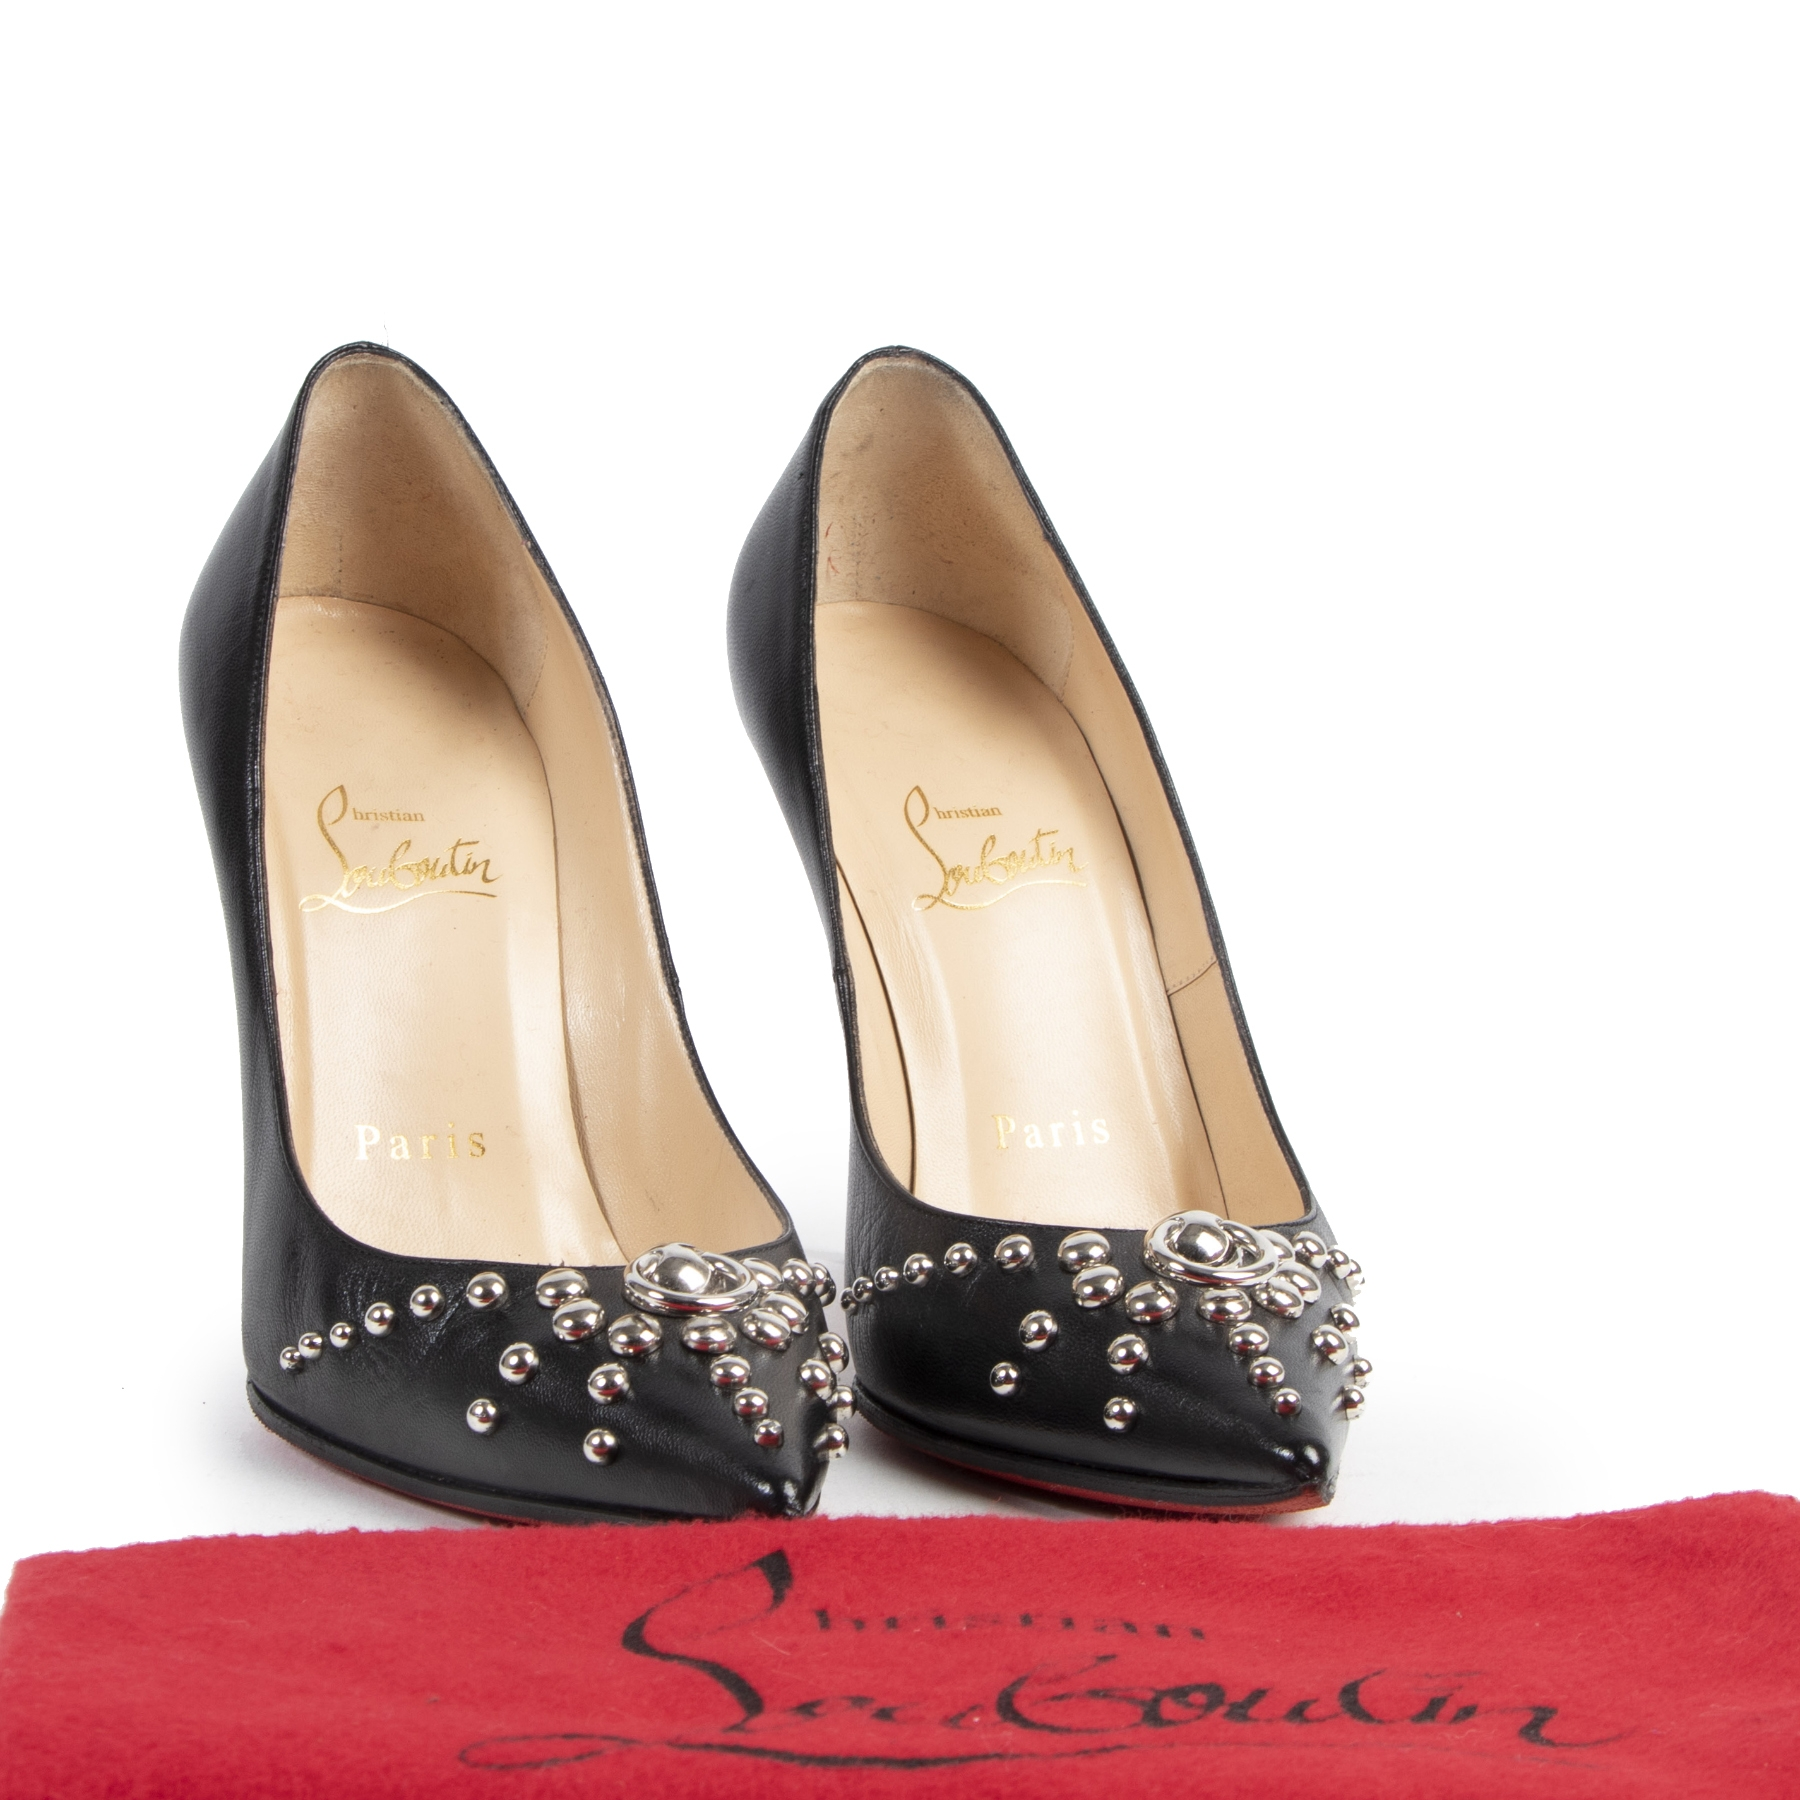 Authentic secondhand Louboutin Door Knock Studded Heels - Size 36 designer shoes heels fashion luxury vintage webshop safe secure online shopping designer high end brands